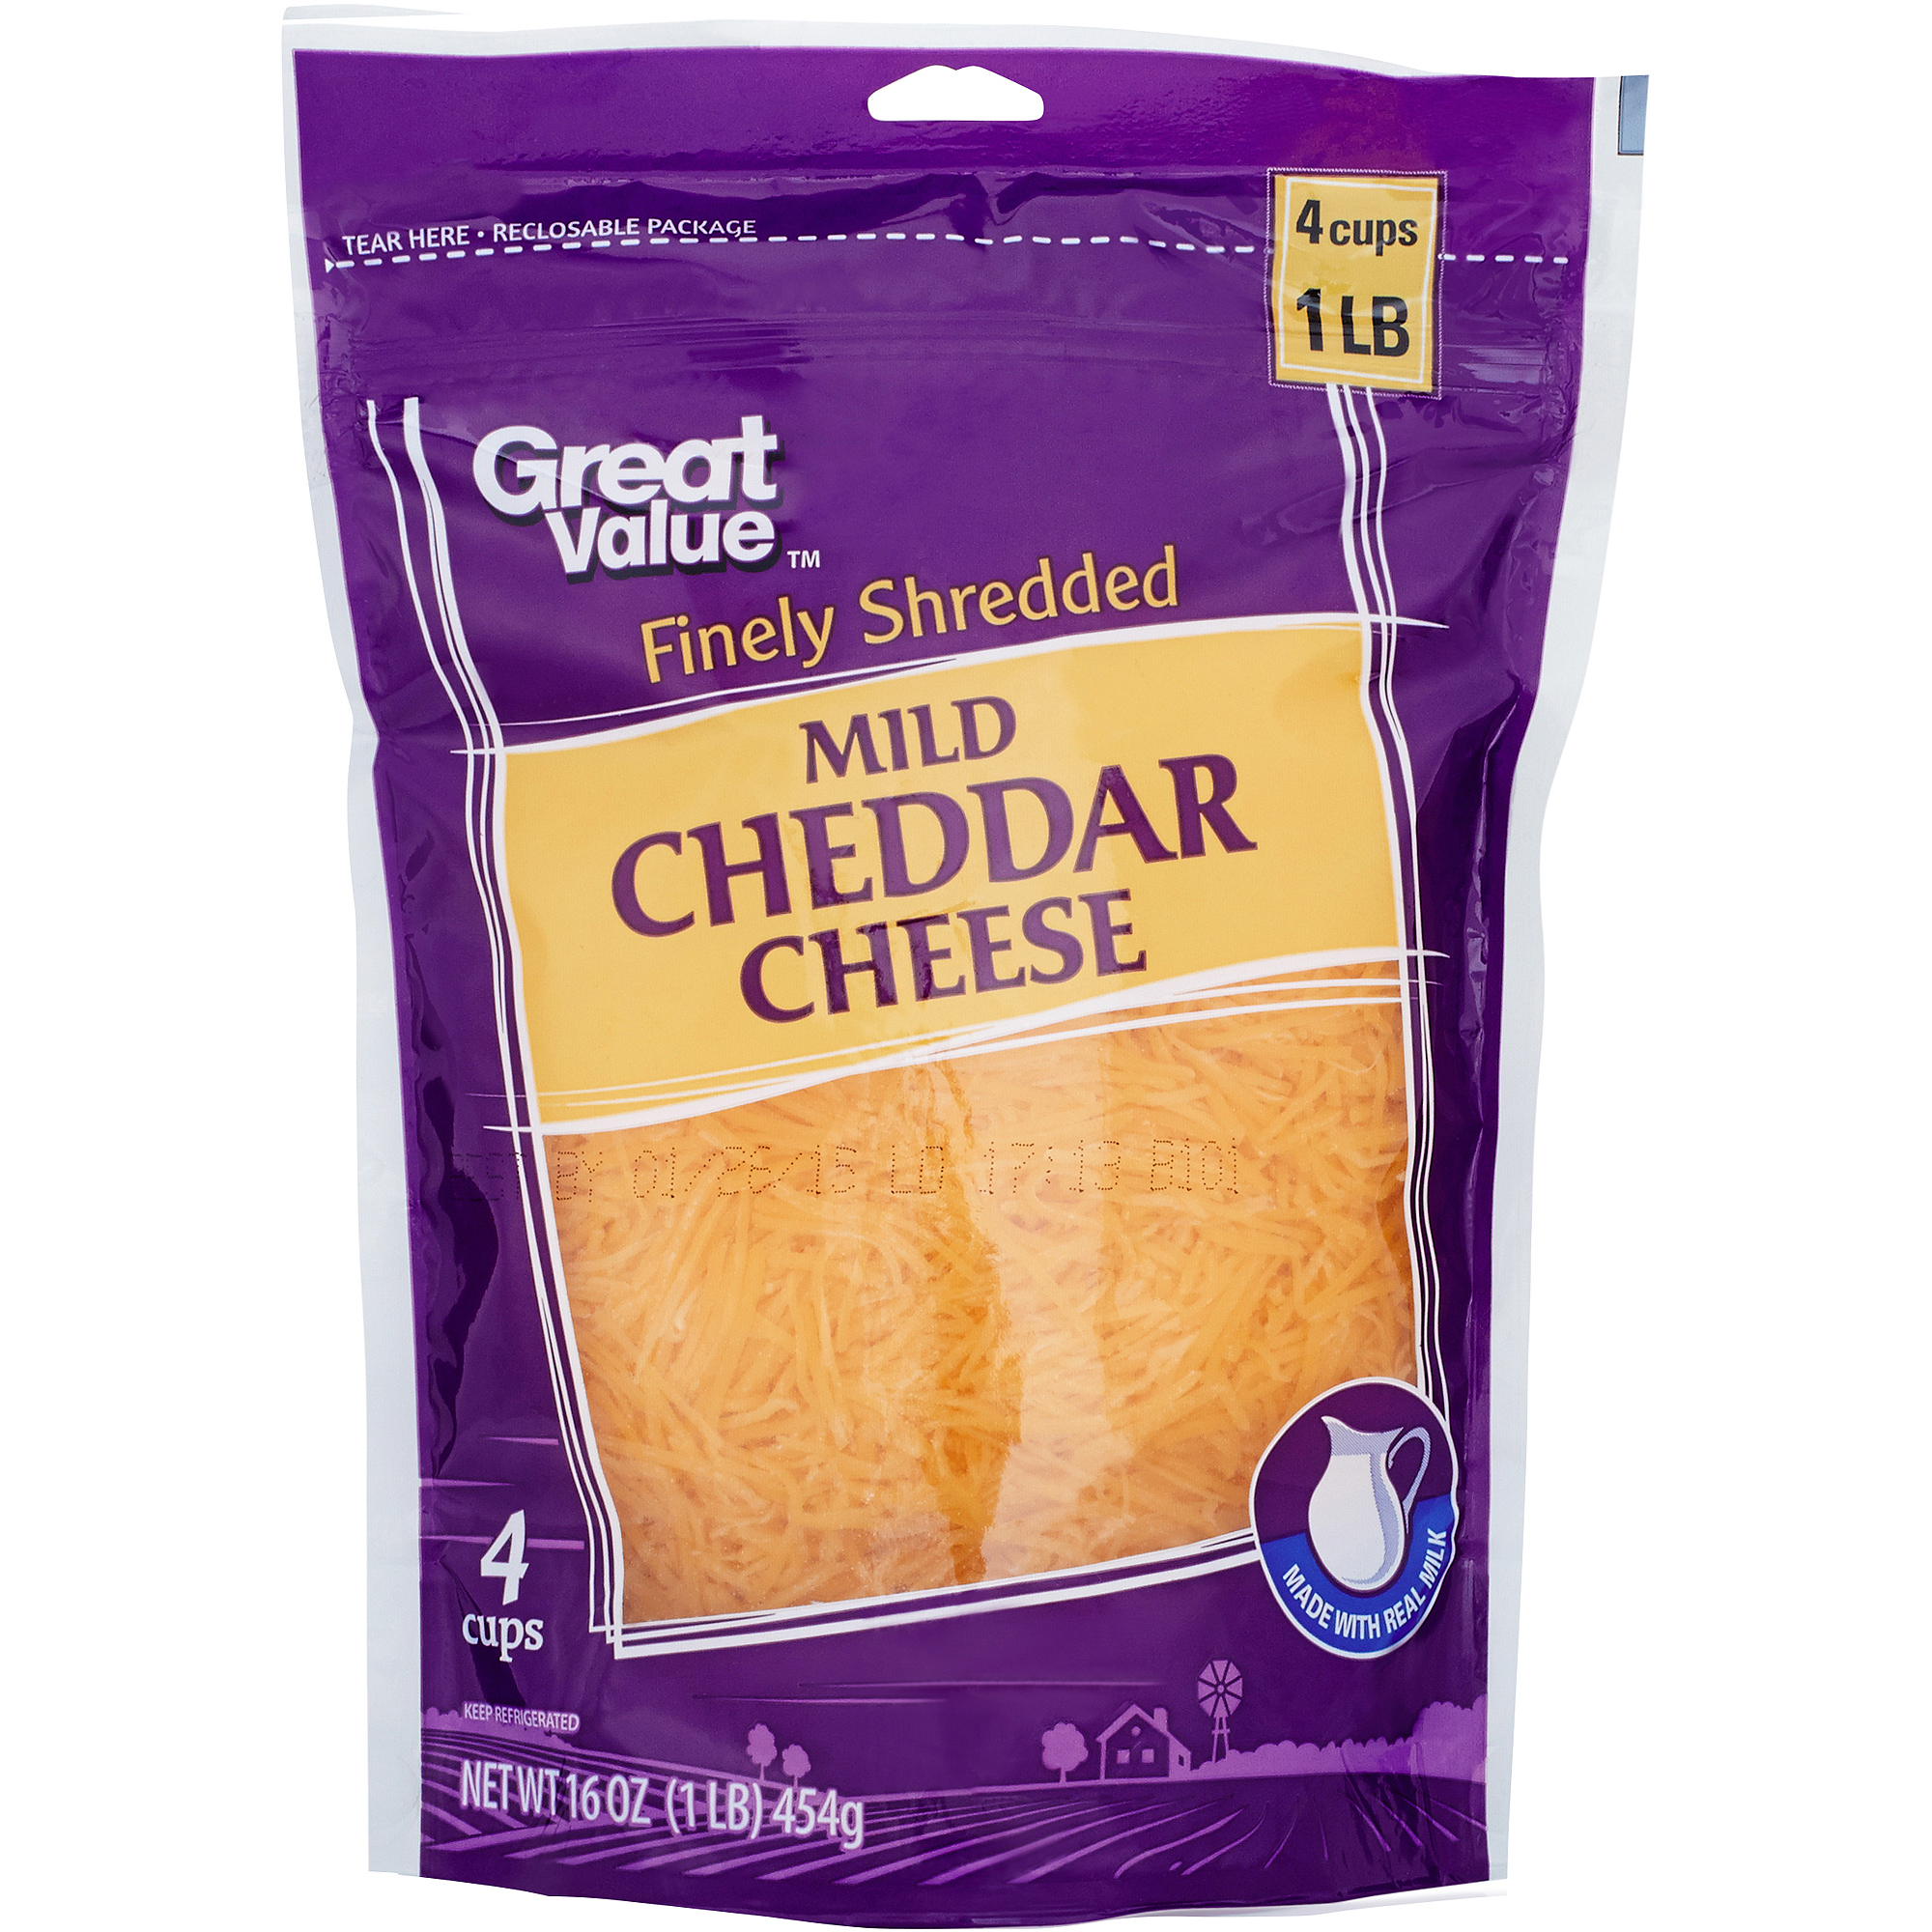 Great Value Finely Shredded Mild Cheddar Cheese, 16 oz